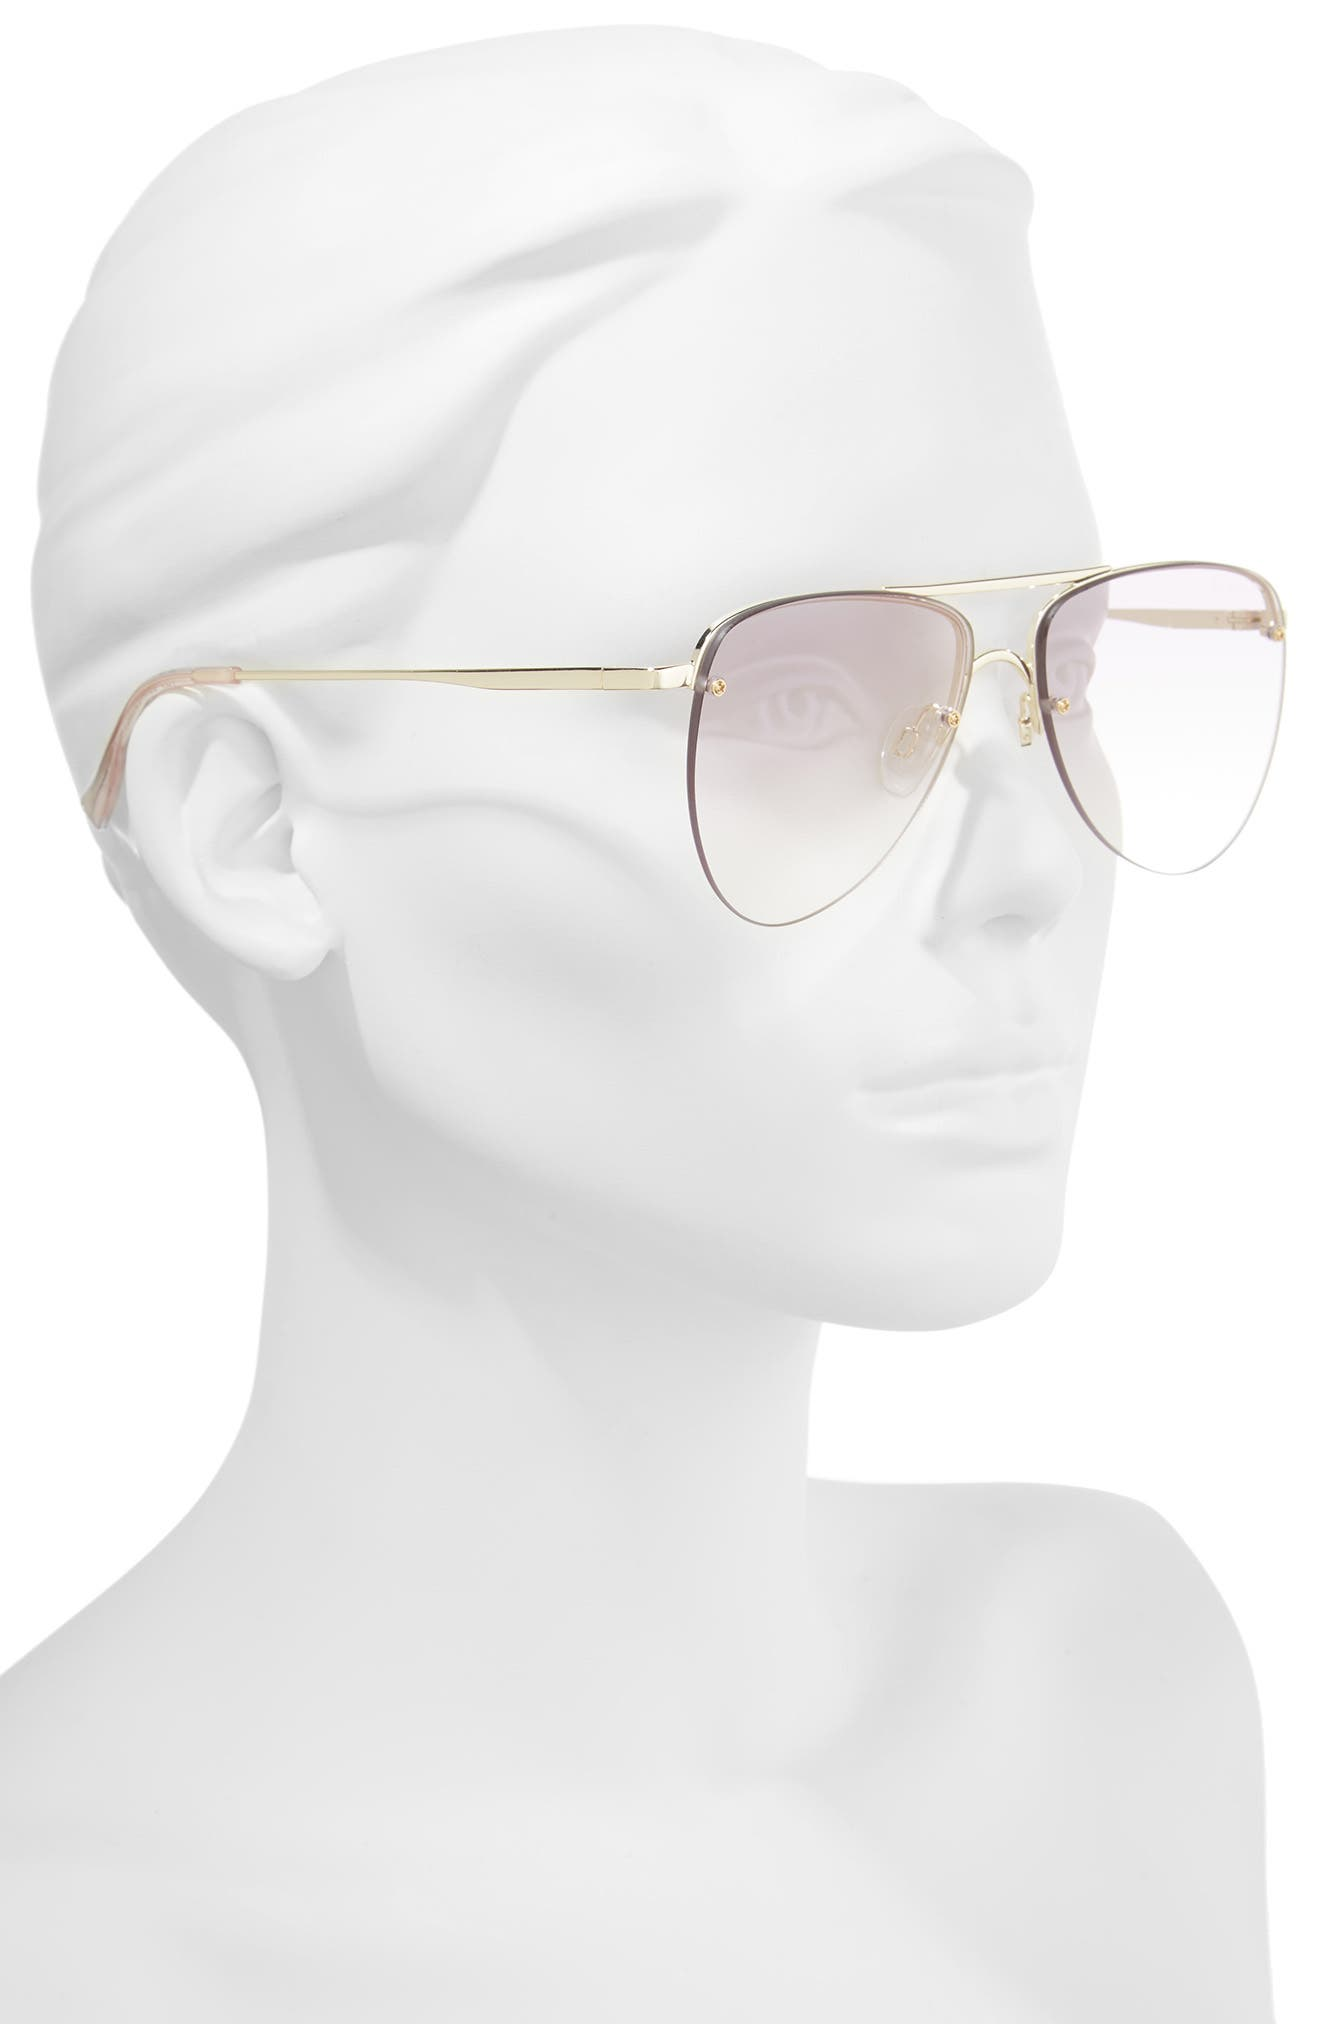 The Prince 57mm Aviator Sunglasses,                             Alternate thumbnail 2, color,                             GOLD